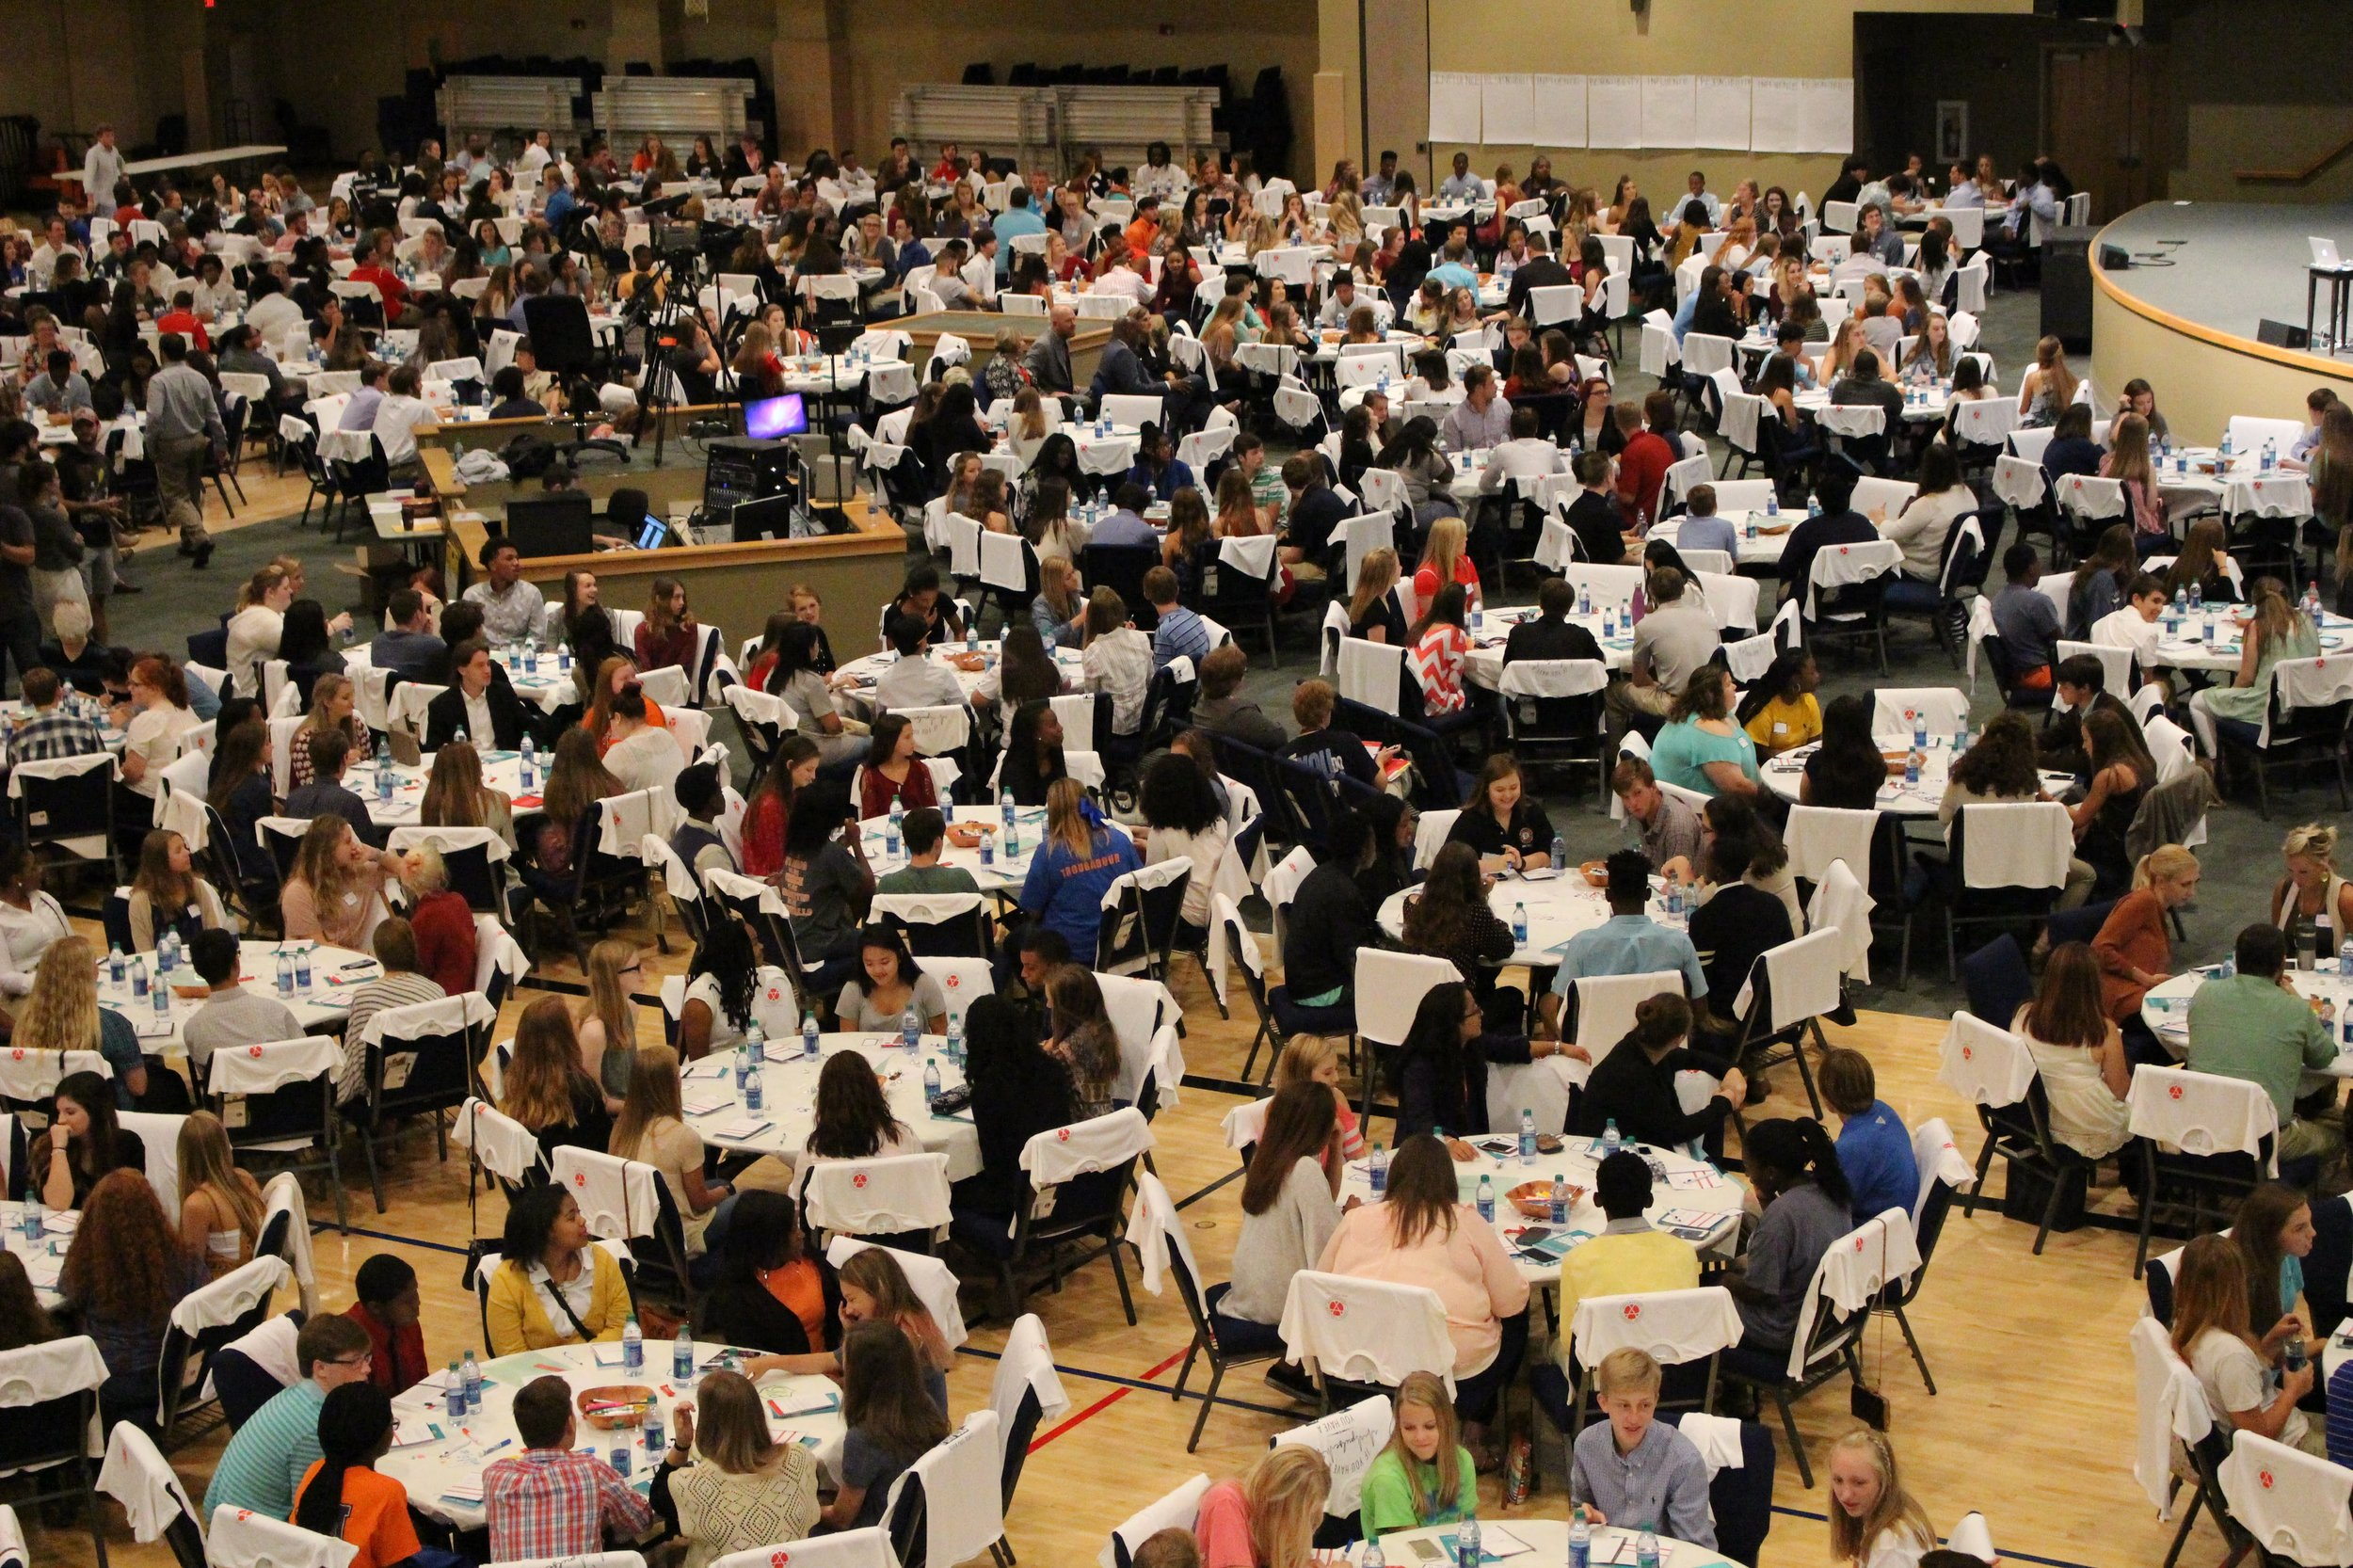 Over 450 students attended the 2017 Shelby County Student Leadership Conference.